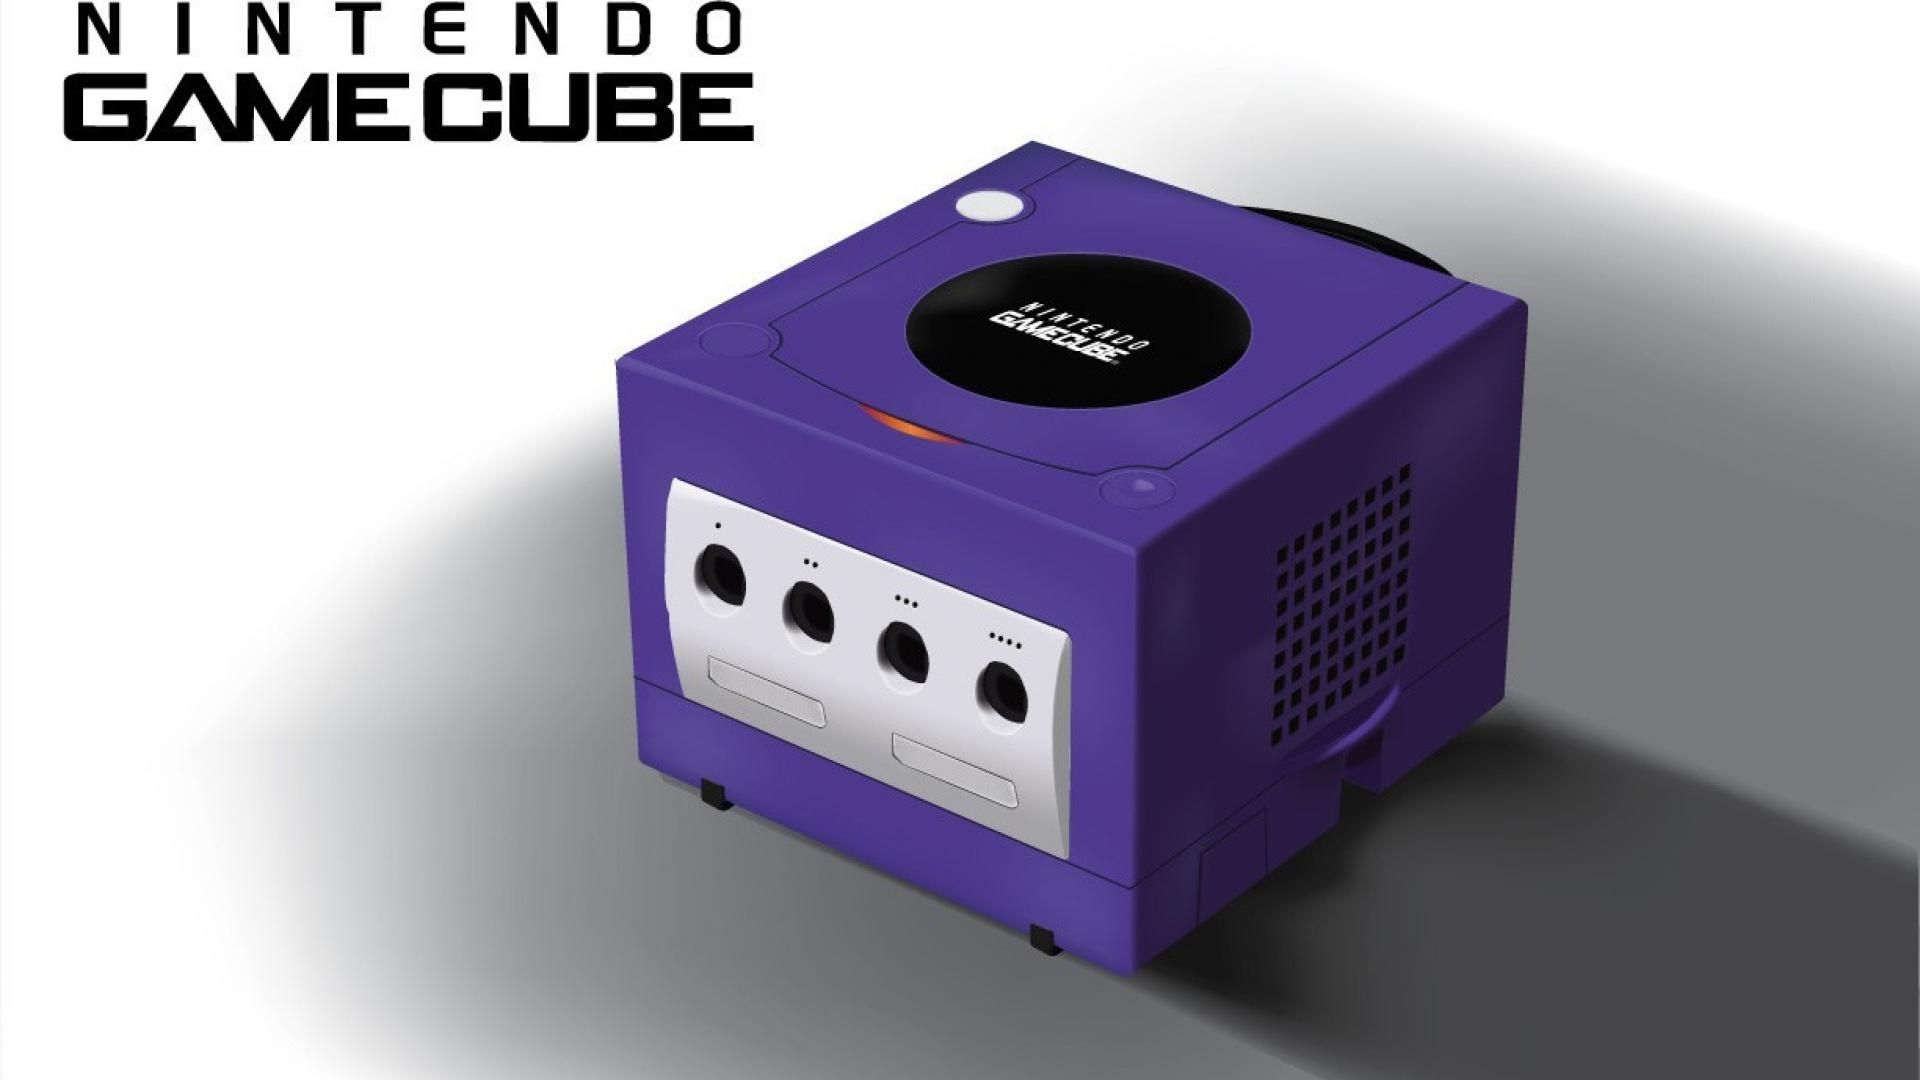 /10-best-gamecube-games-of-all-time-ranked-by-sales-h61x370s feature image